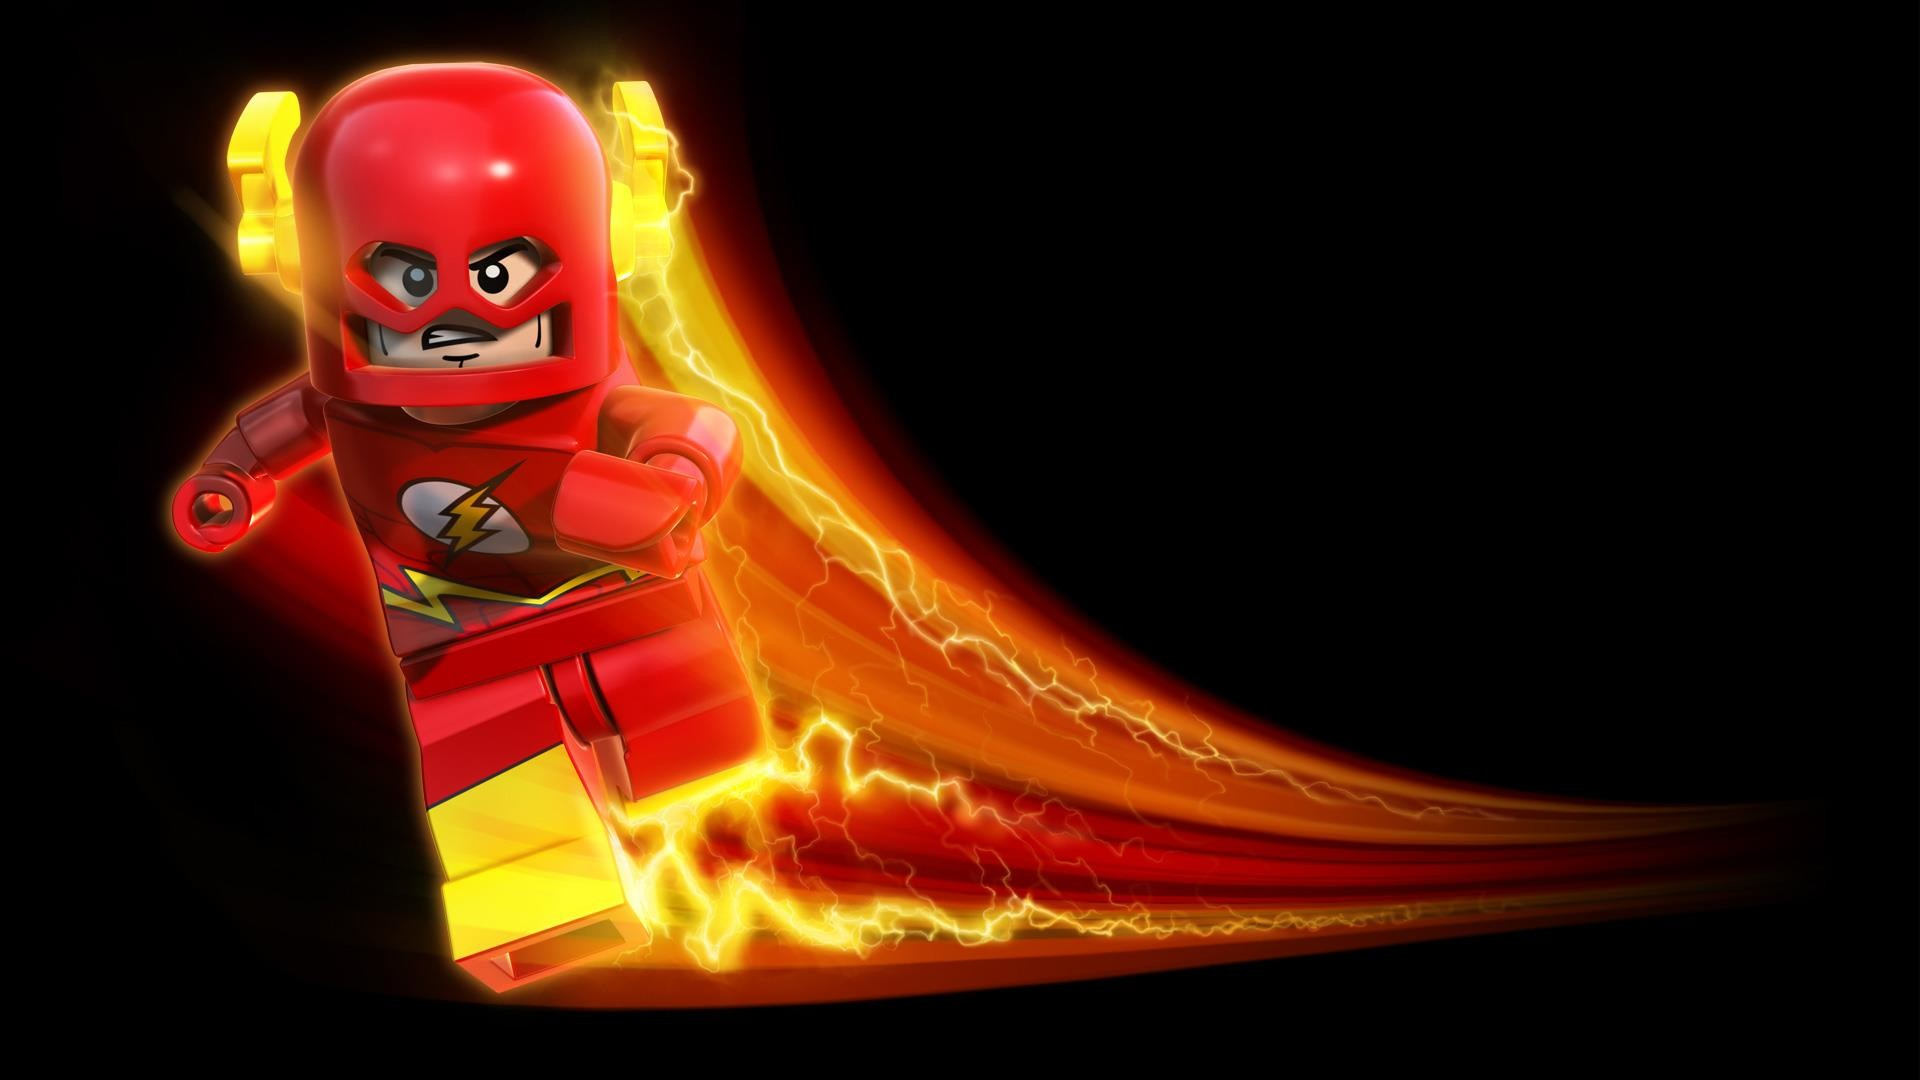 1920x1080 Lego Wallpaper 6520